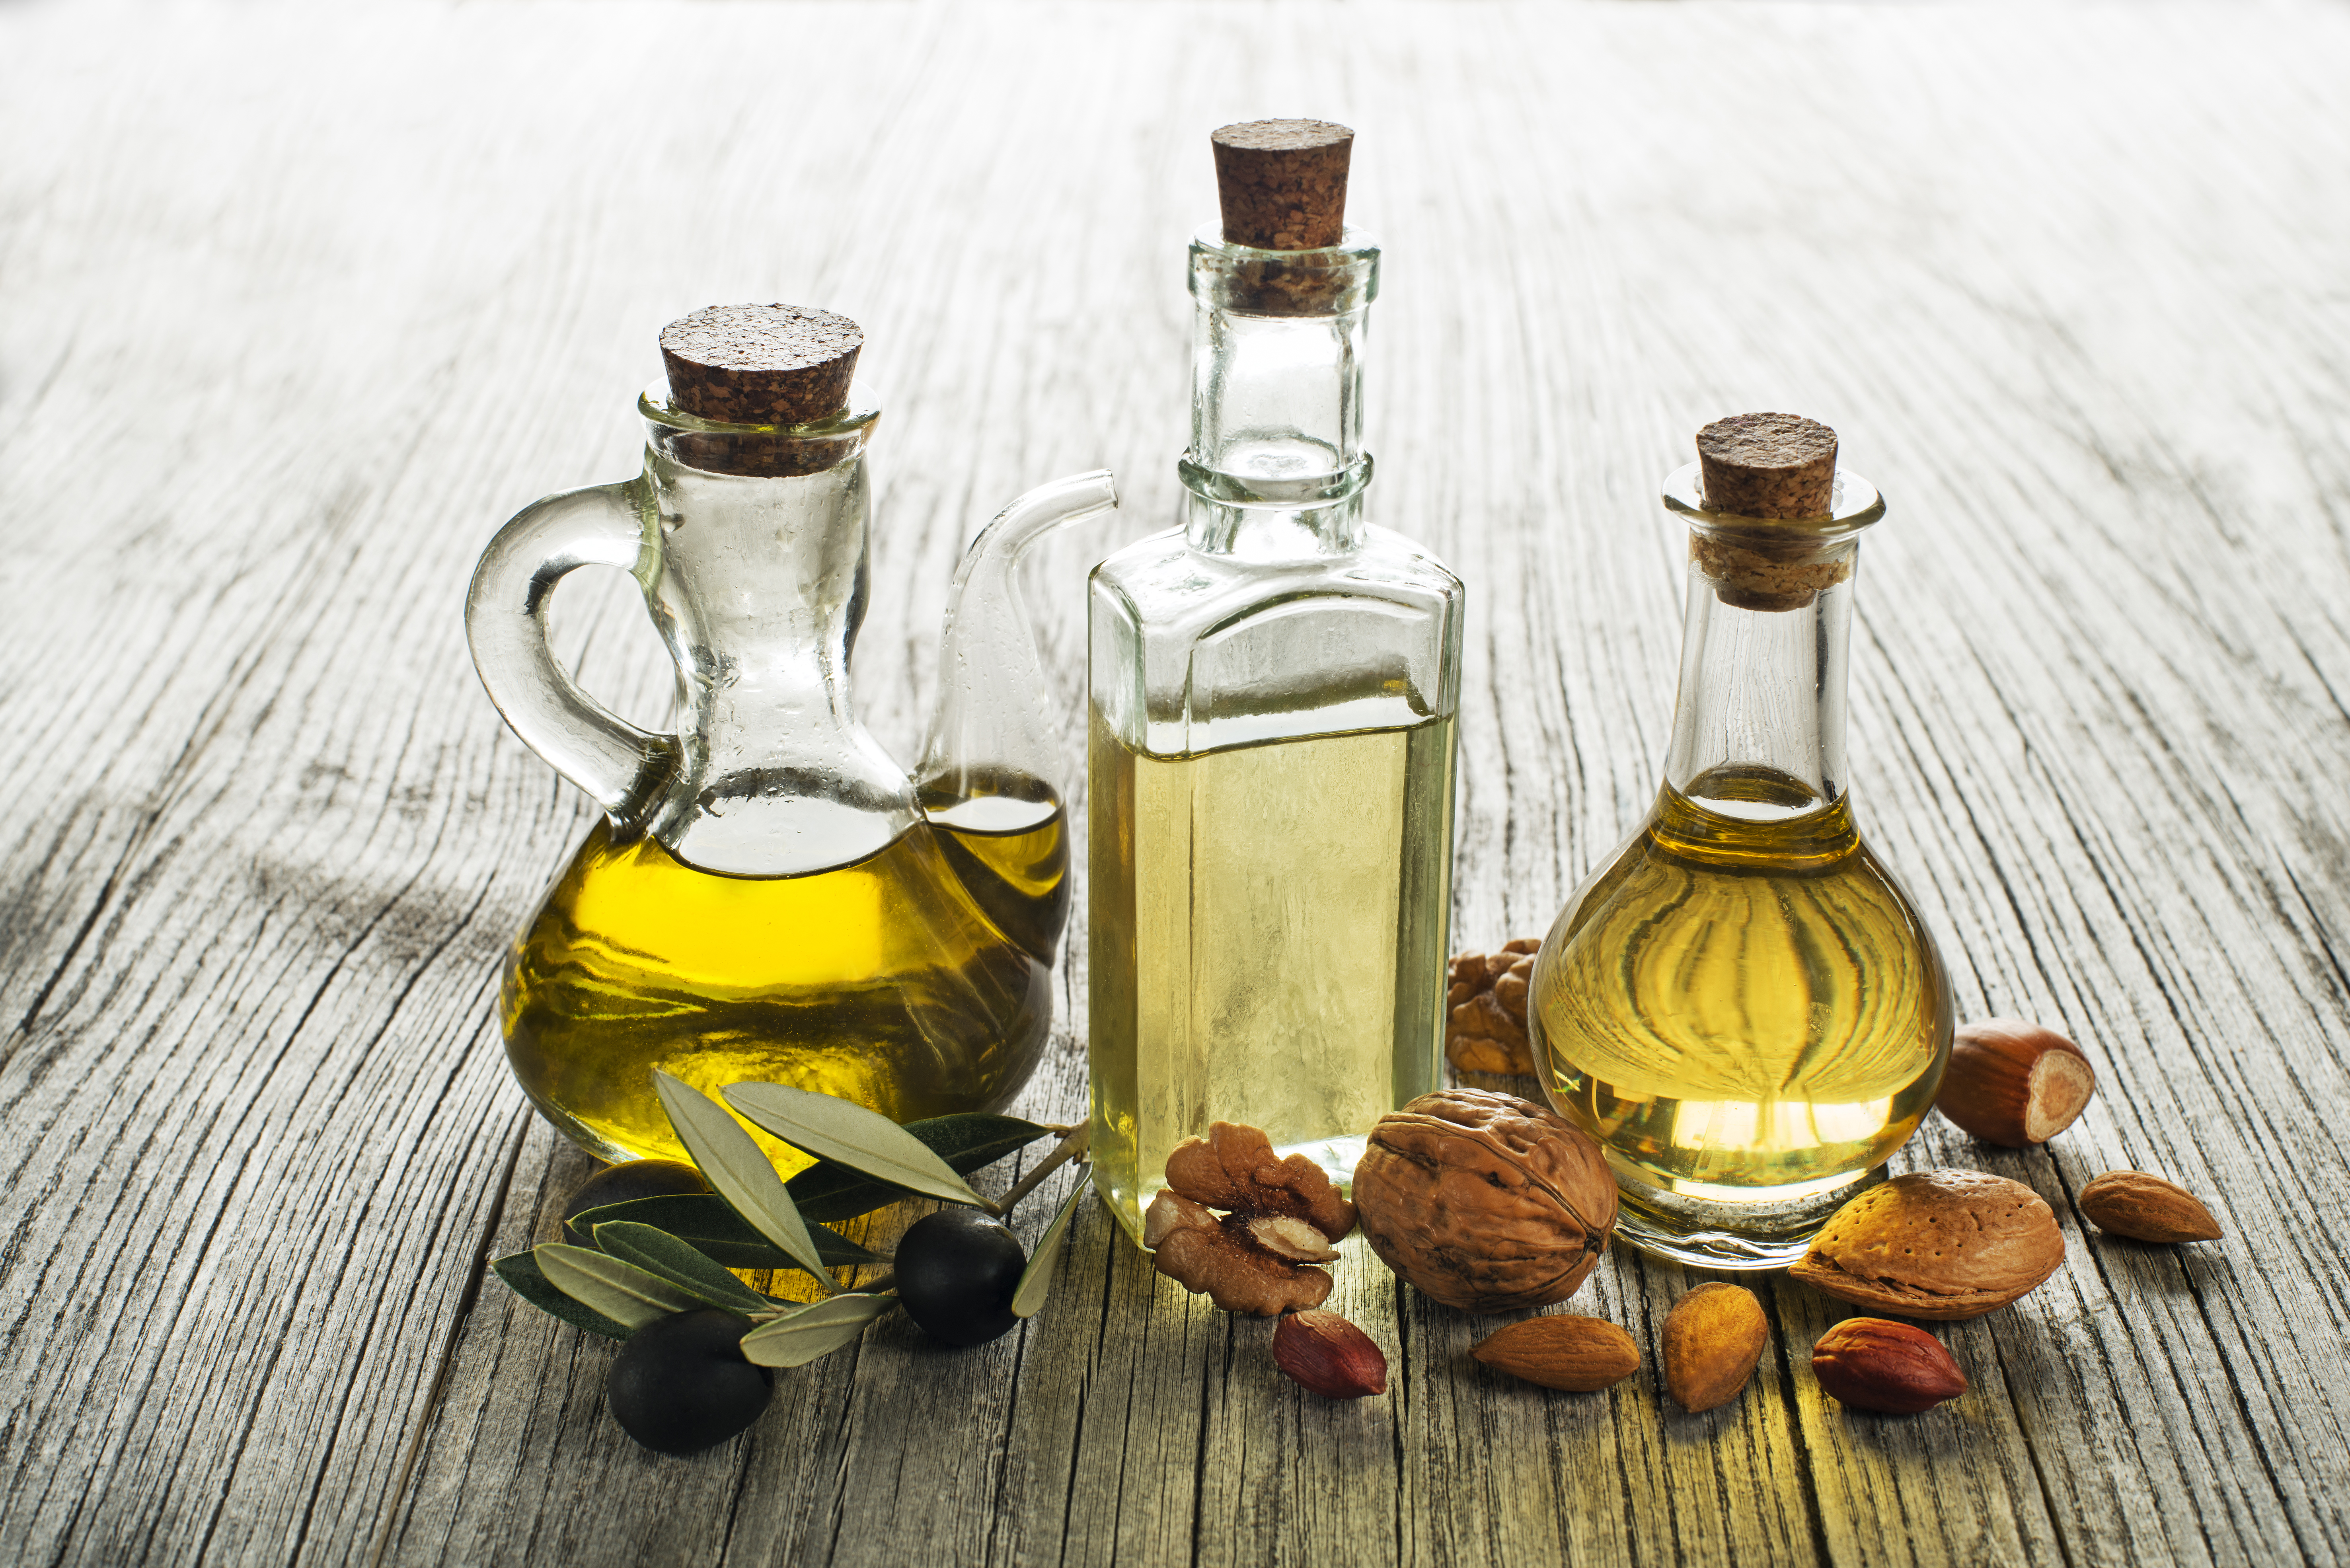 How to Make Glycerin From Vegetable Oil